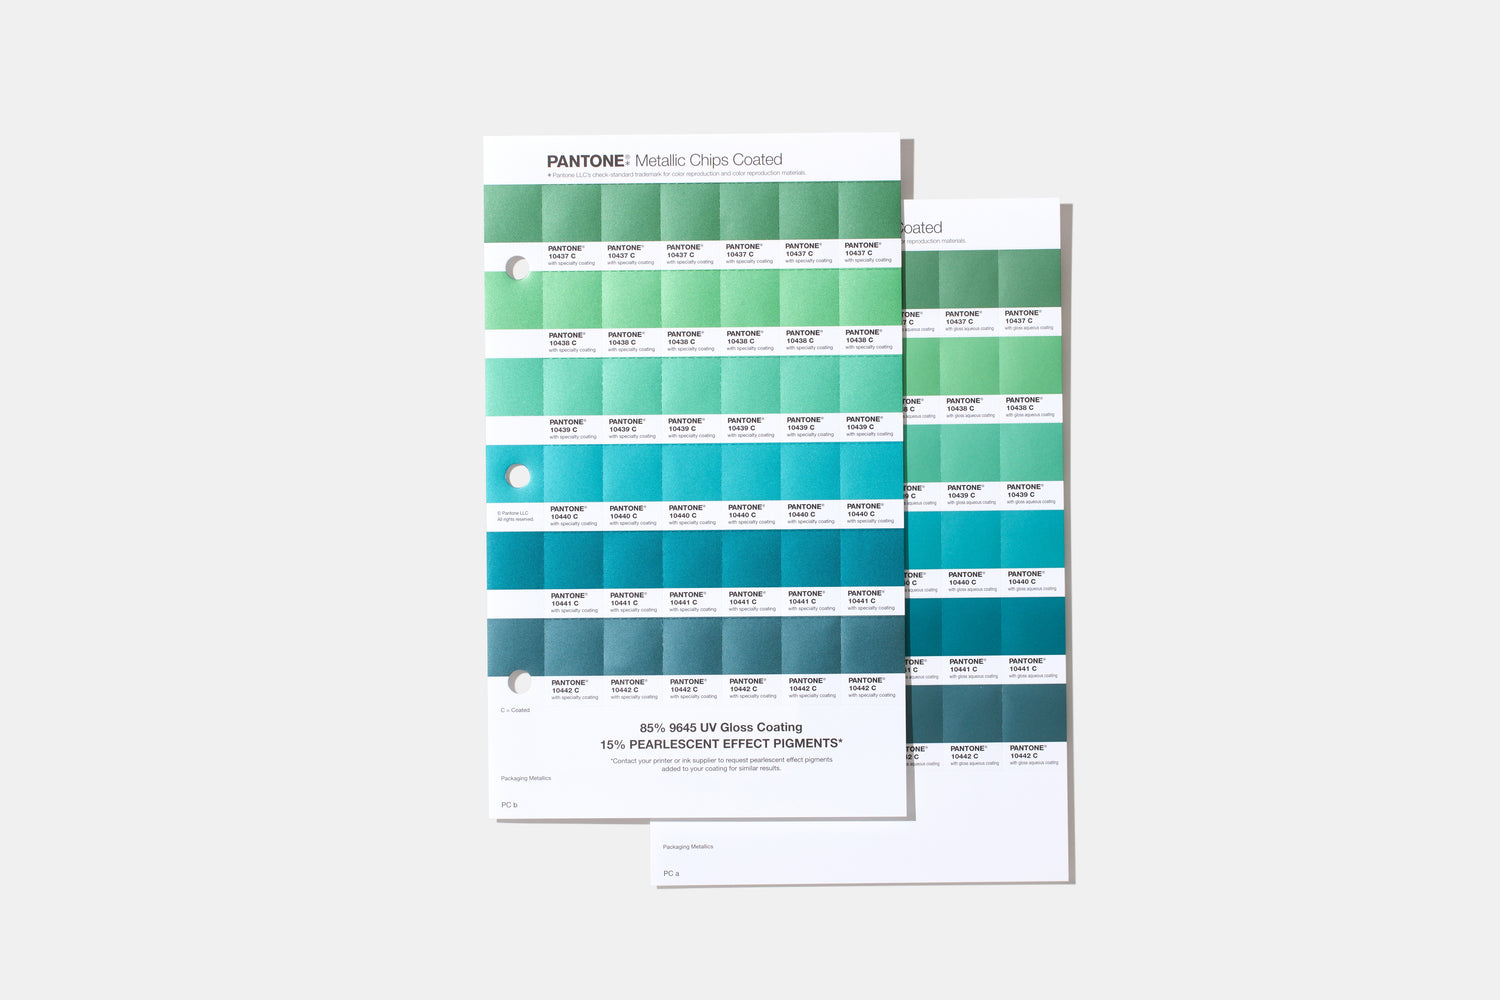 PANTONE Metallics Coated Replacement Pages